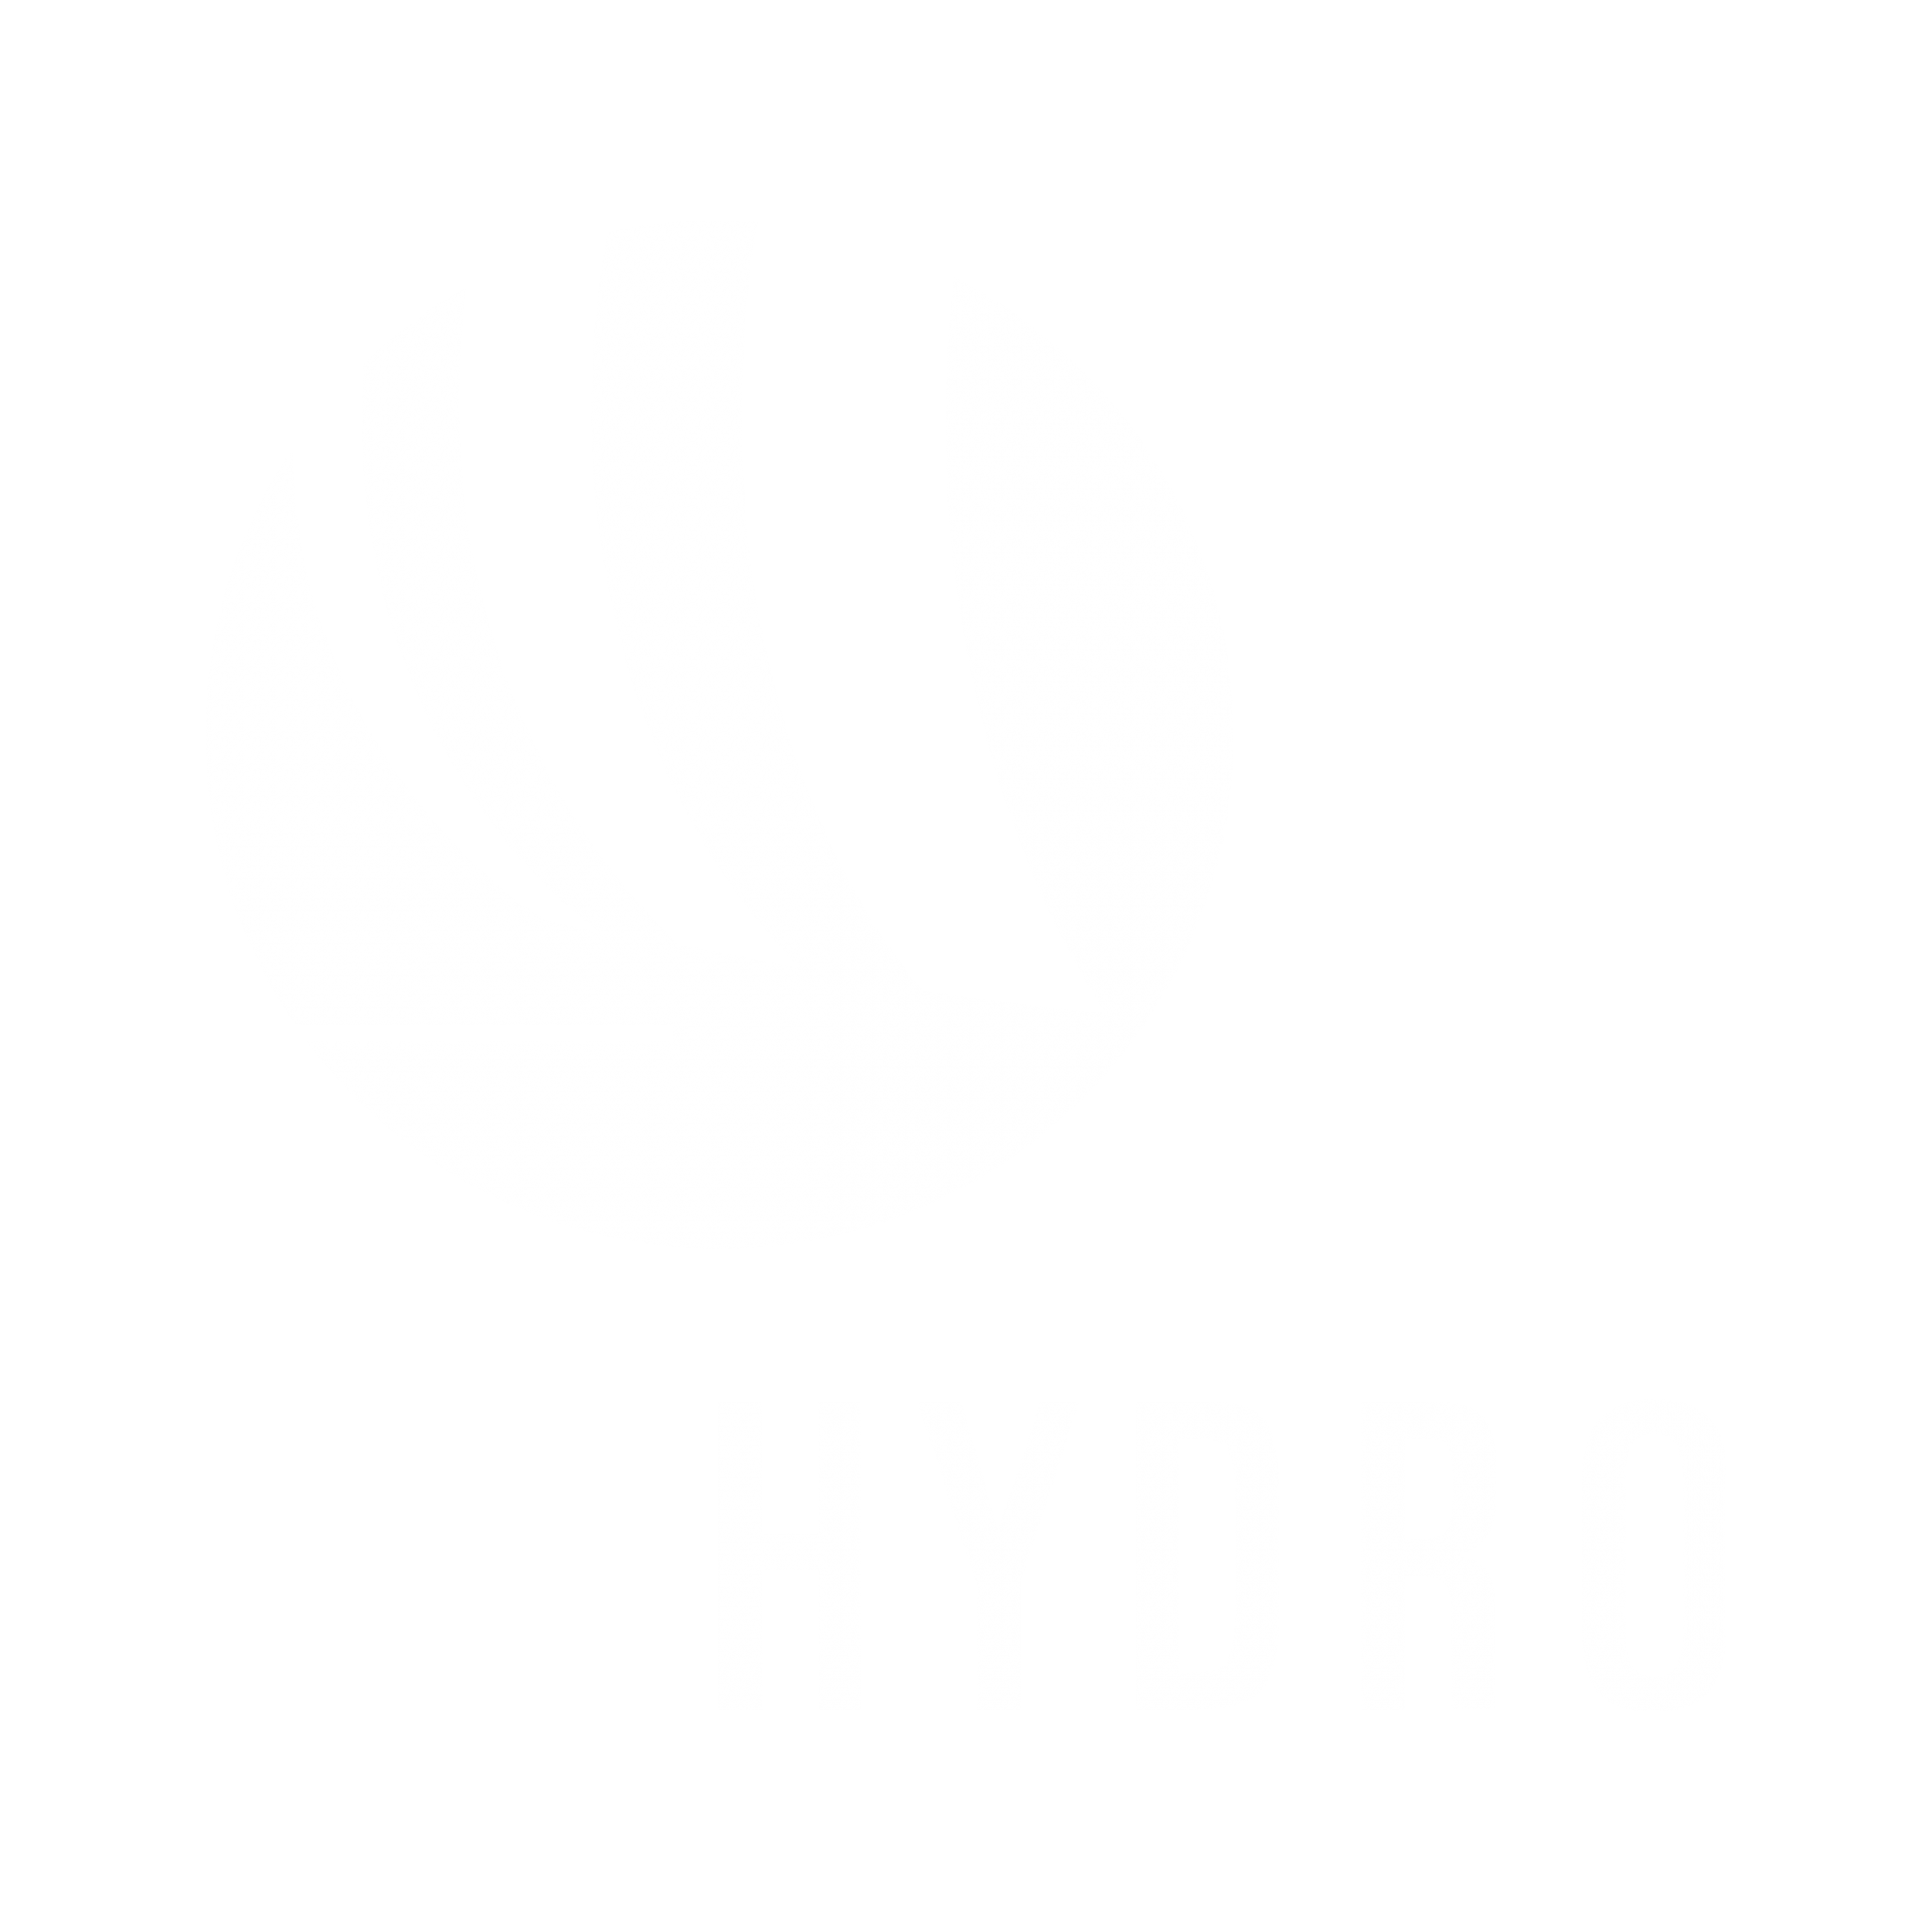 Hydro logotype in white